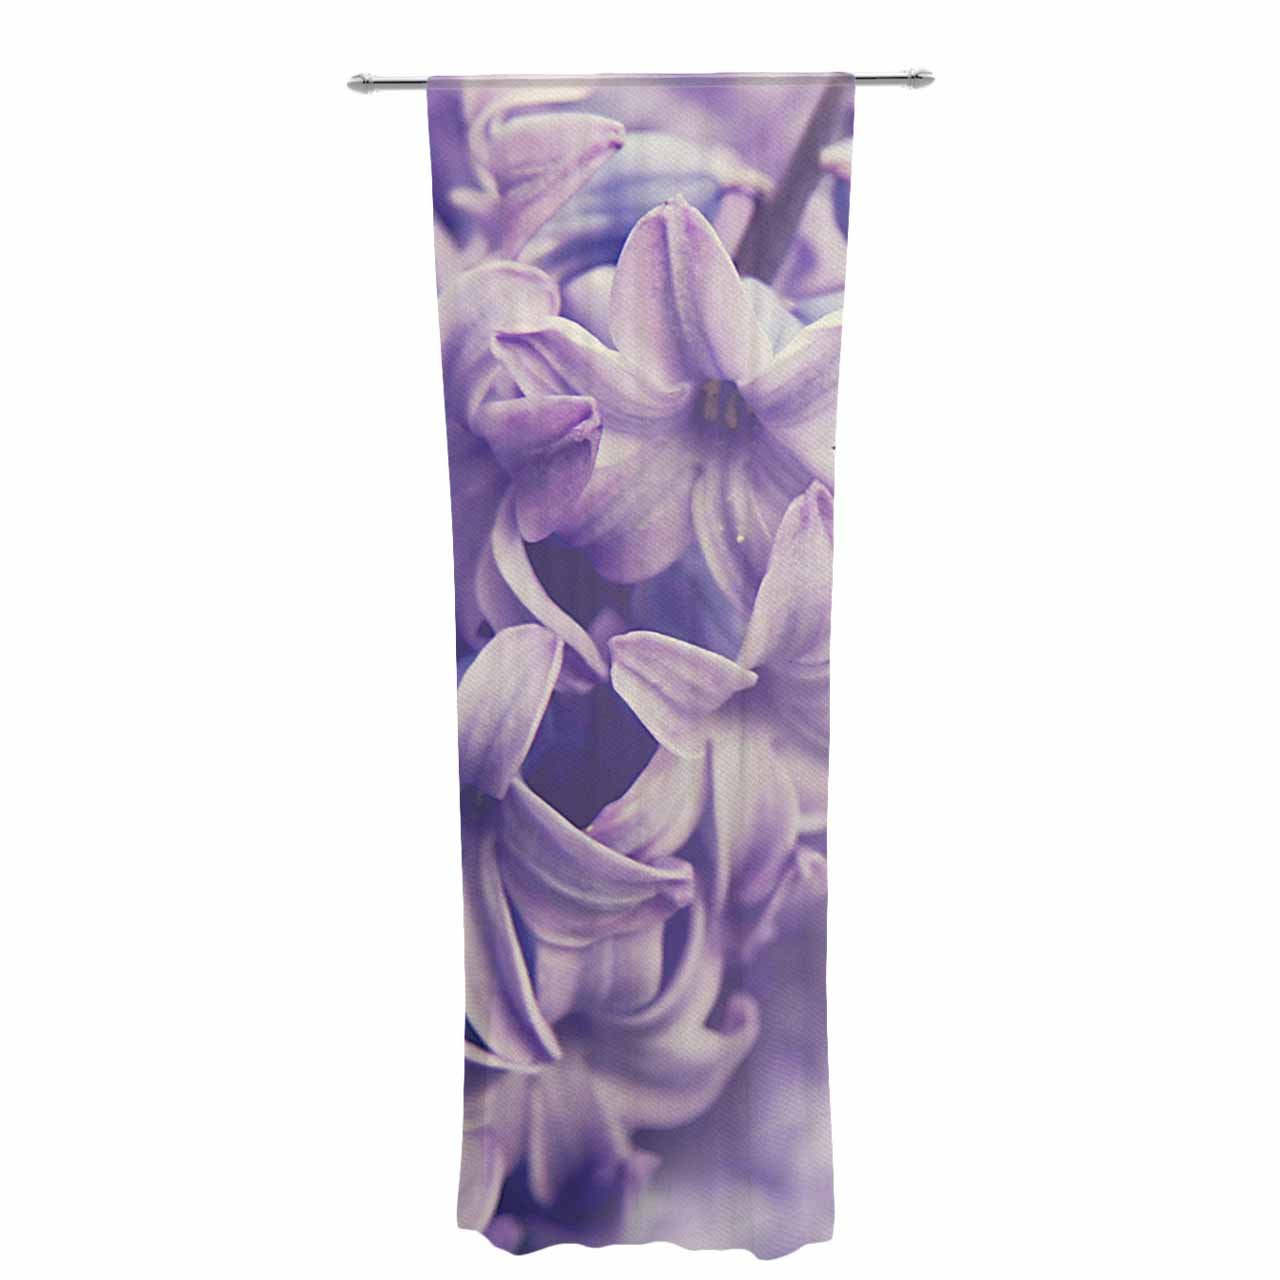 30 x 84 Sheer Curtains Kess InHouse Angie Turner Lavender Dreams Purple Lilac Decorative Set